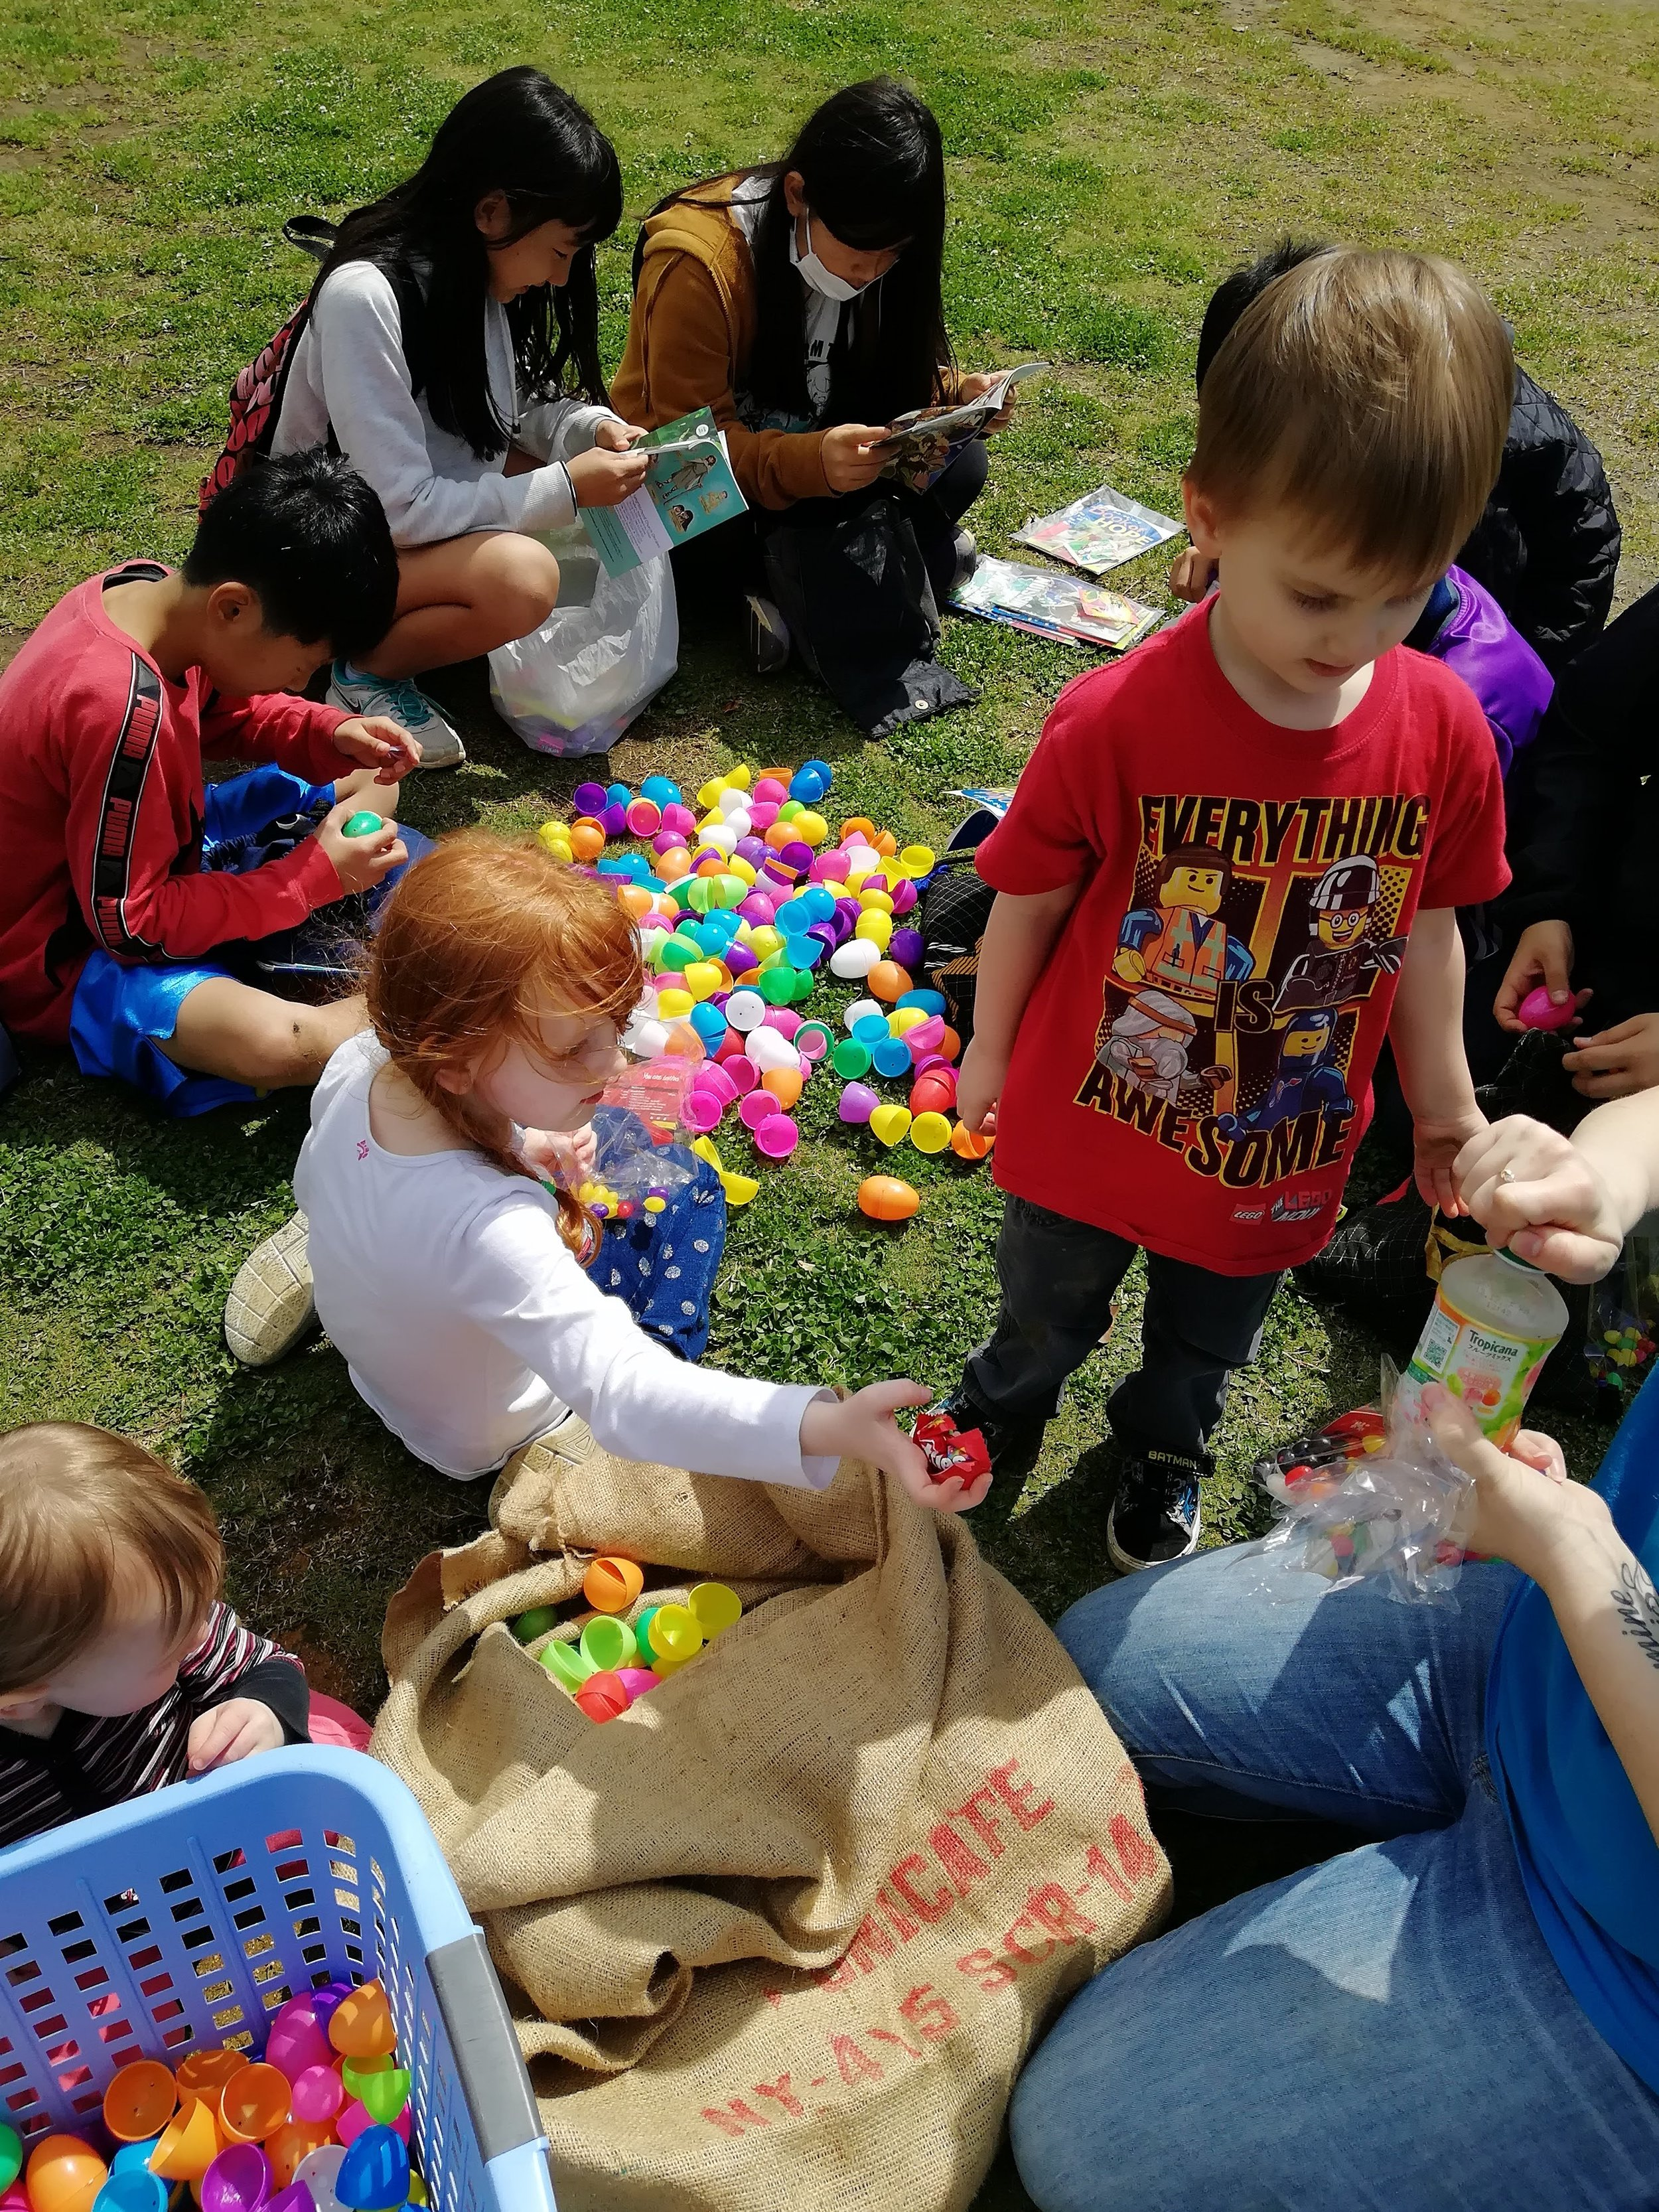 One of the special moments from the Easter Picnic, seeing children from the community reading about Jesus, maybe for the first time.